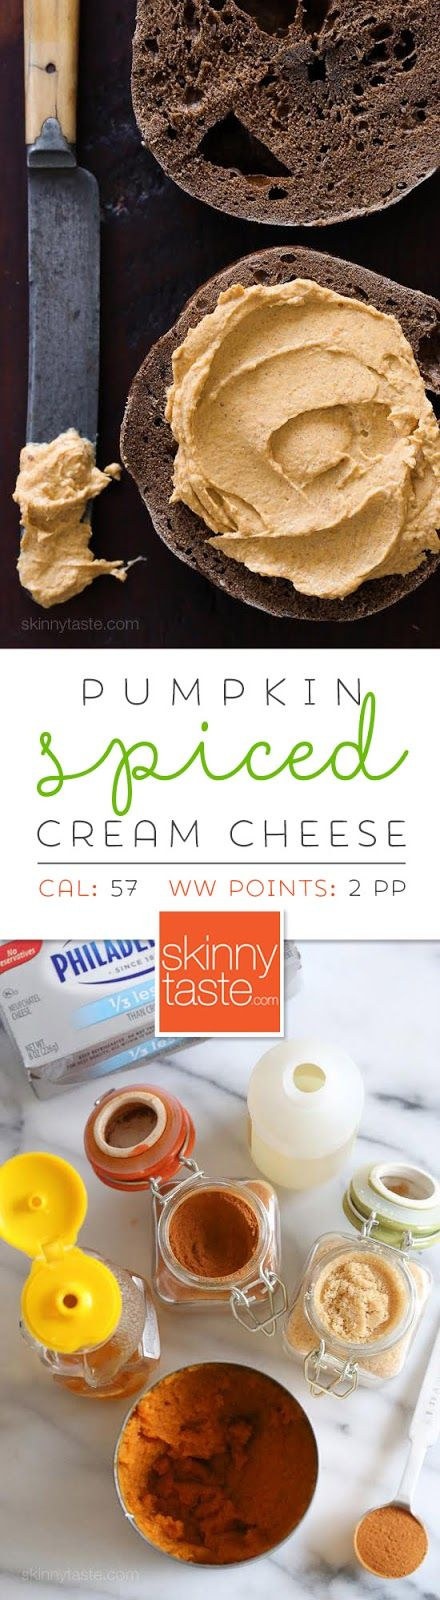 Pumpkin Spiced Cream Cheese –an easy way to enjoy a taste of Fall for breakfast!